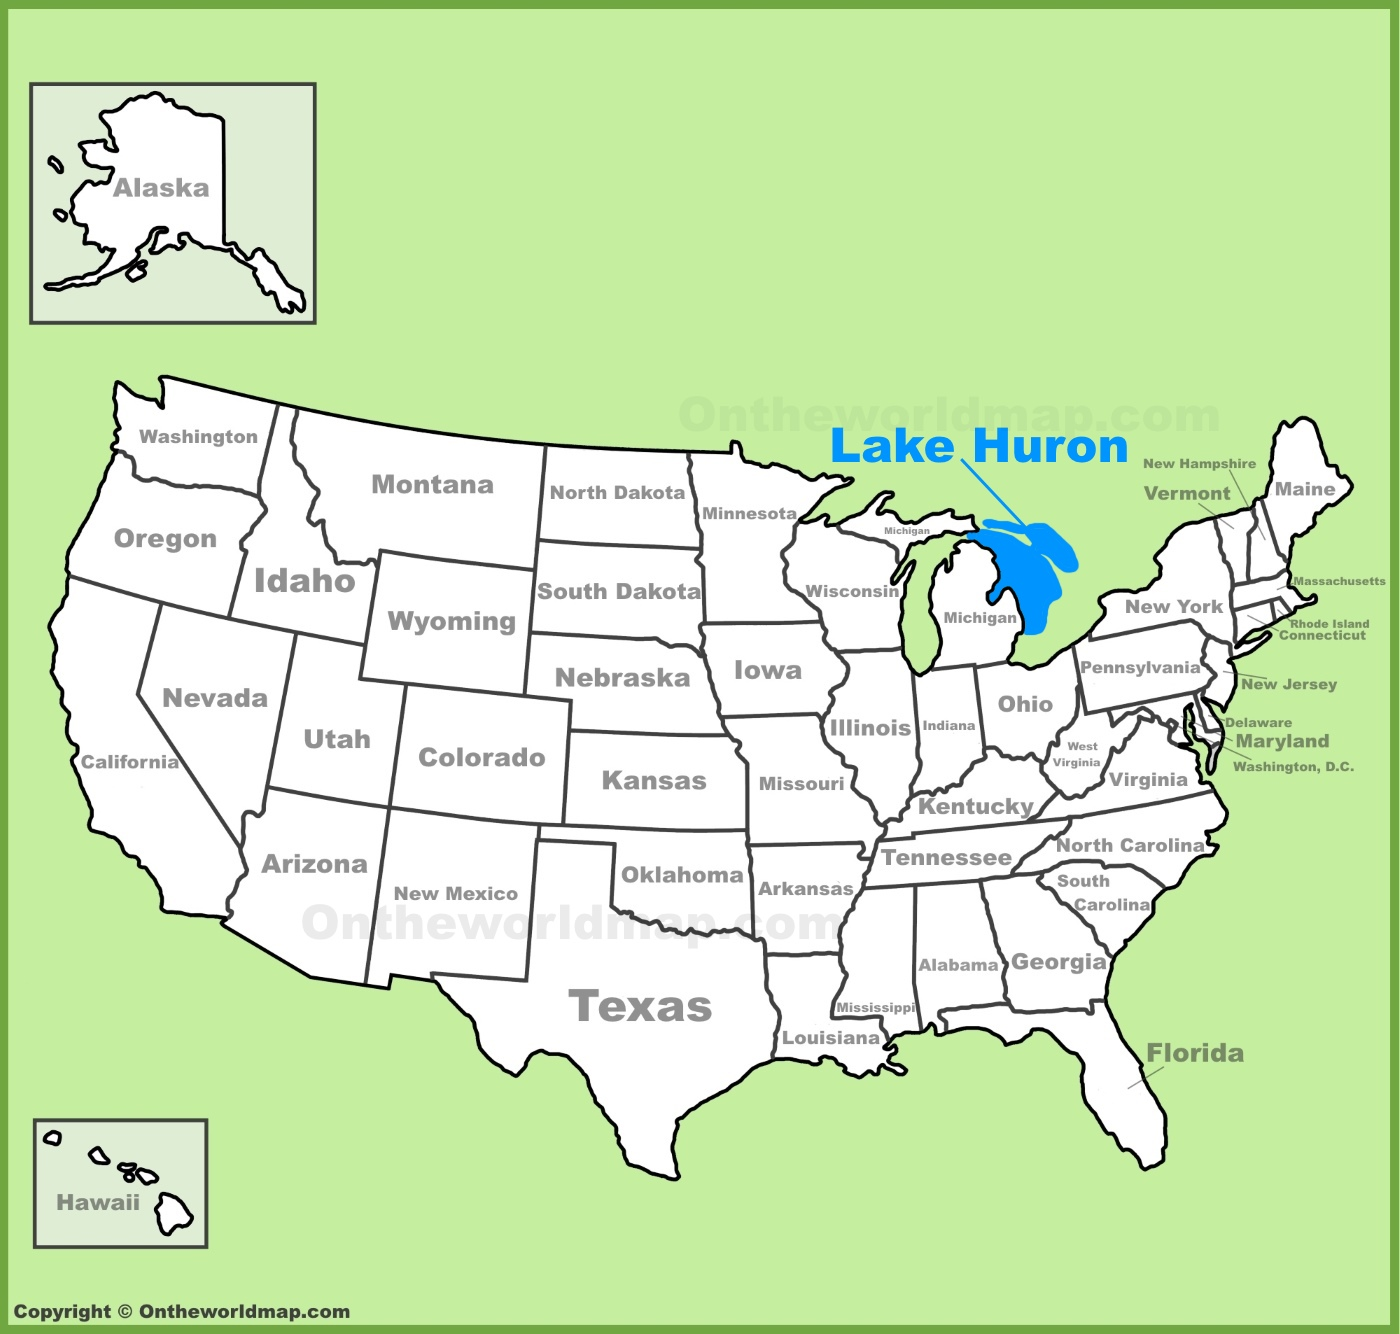 Lake Huron On Us Map Lake Huron location on the U.S. Map